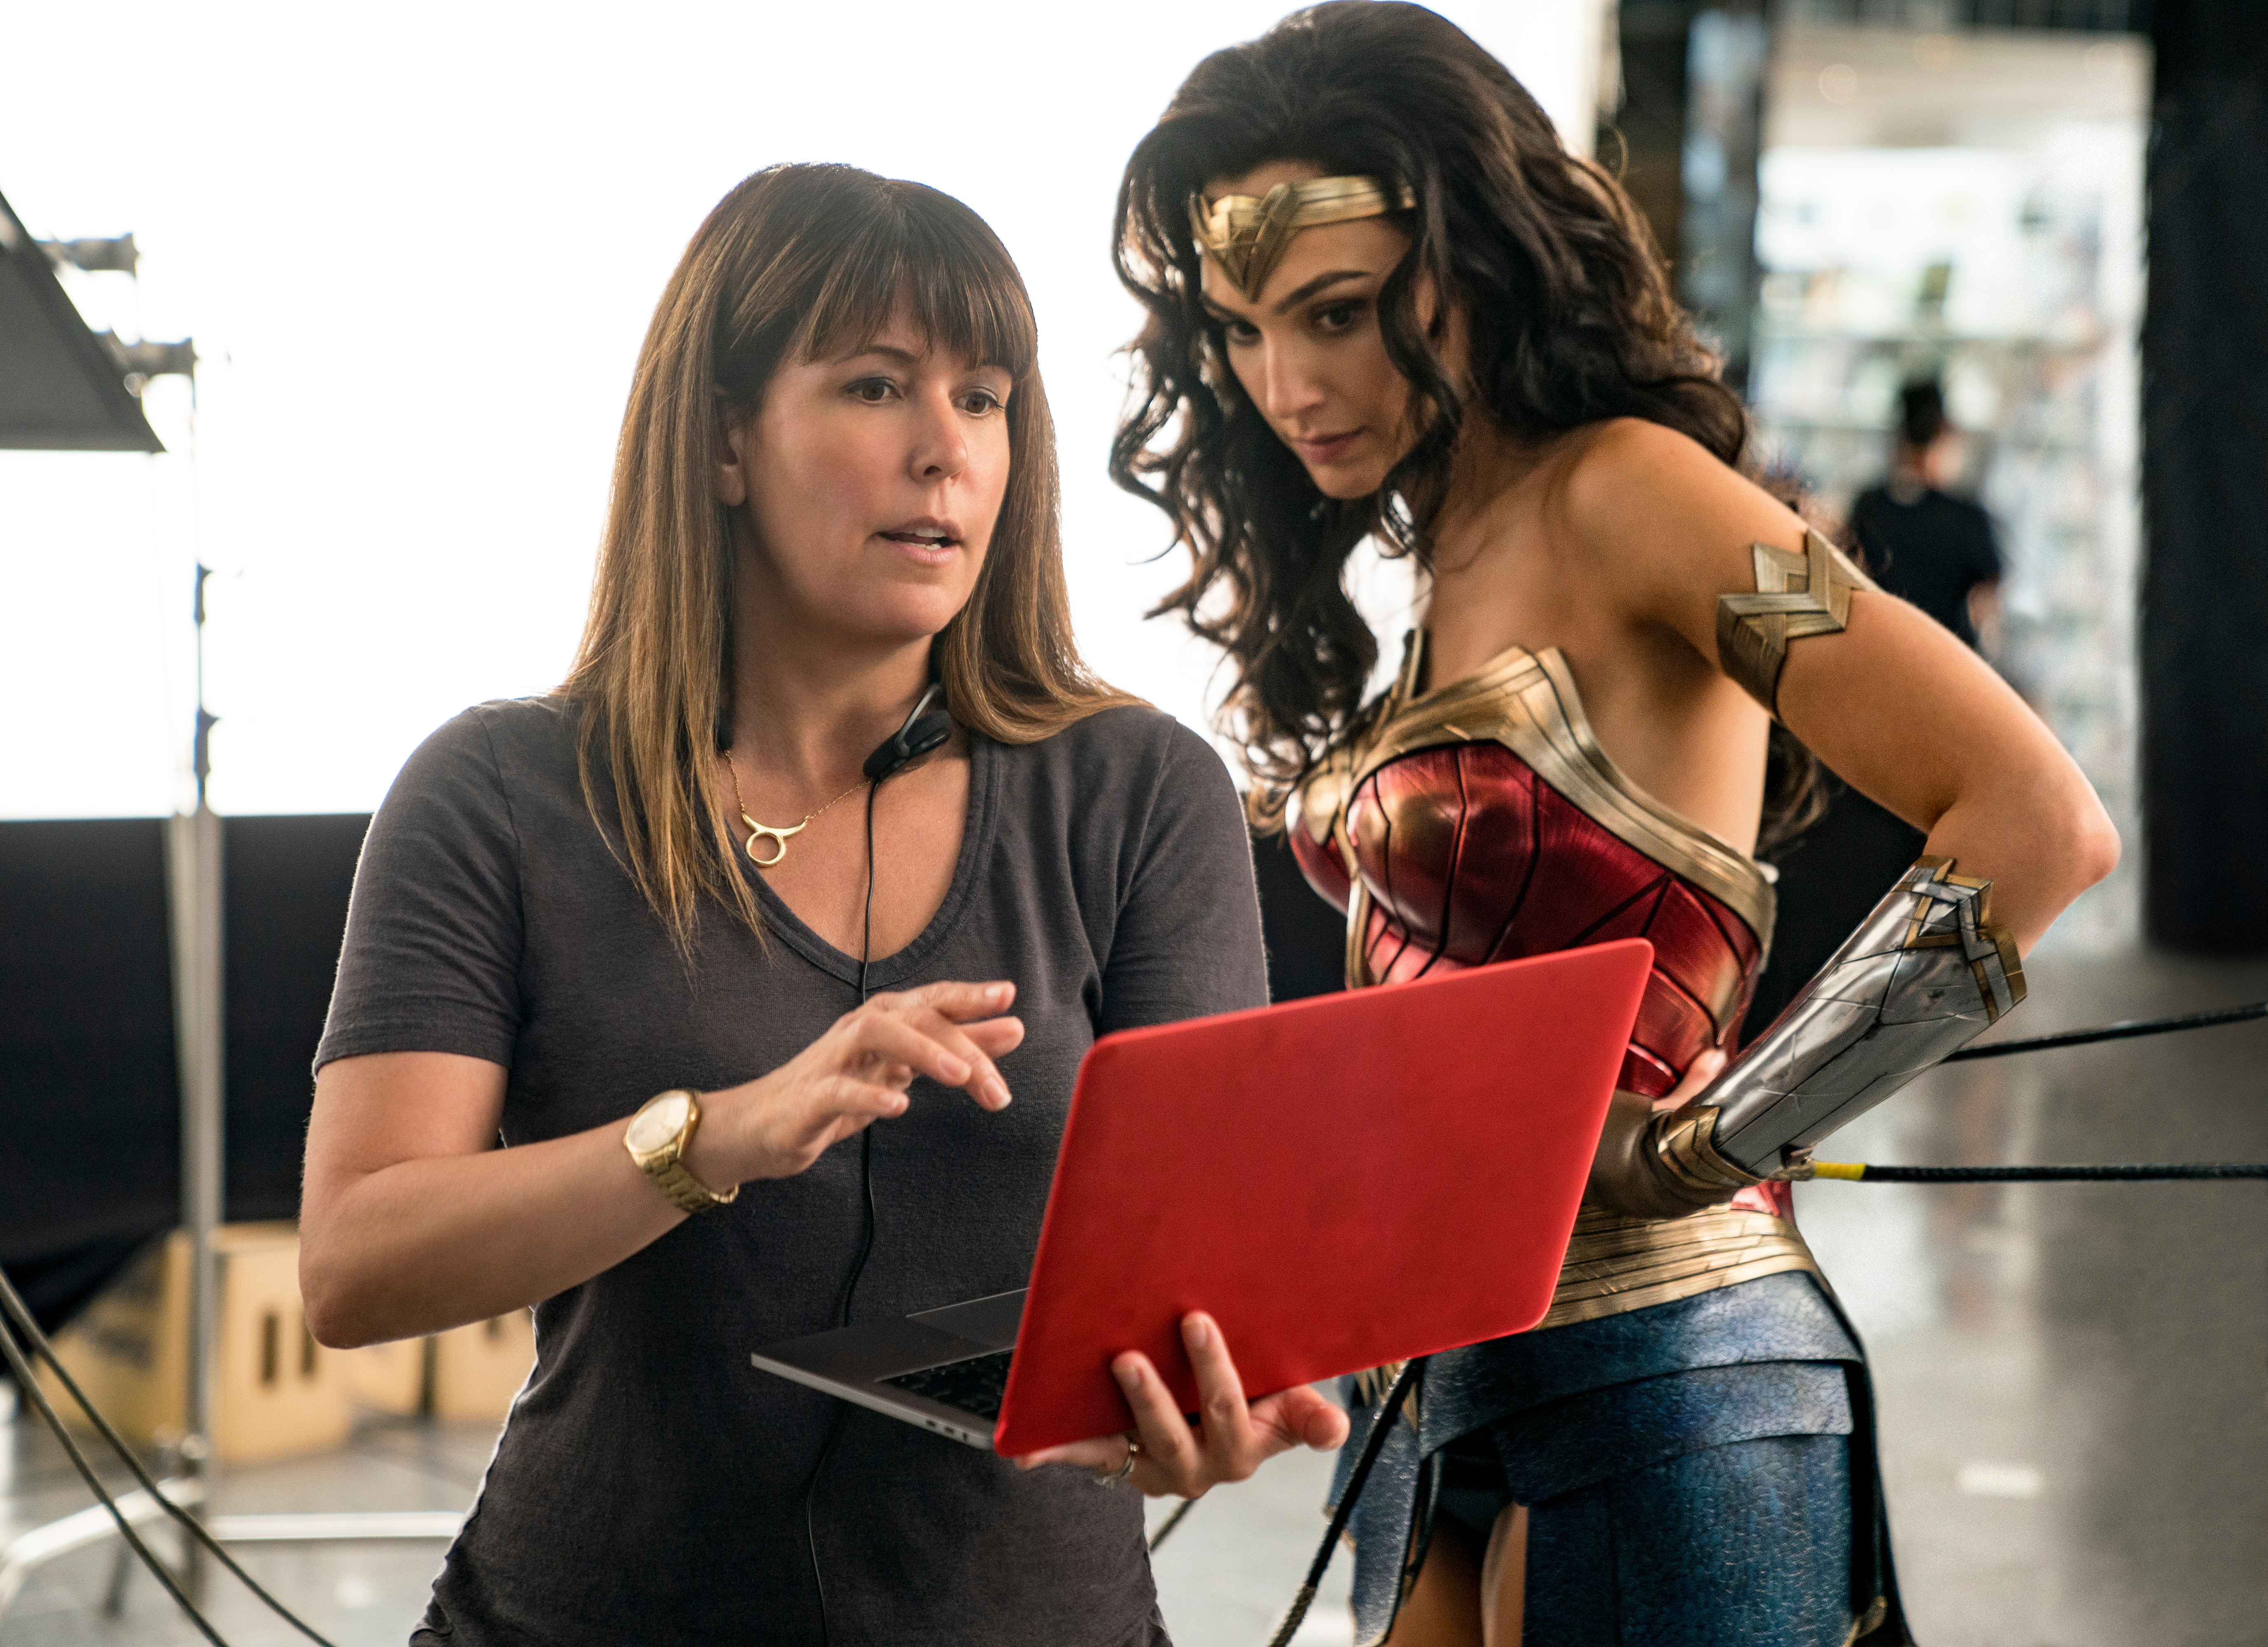 Wonder Woman 1984 Goes BTS With Gal Gadot and Patty